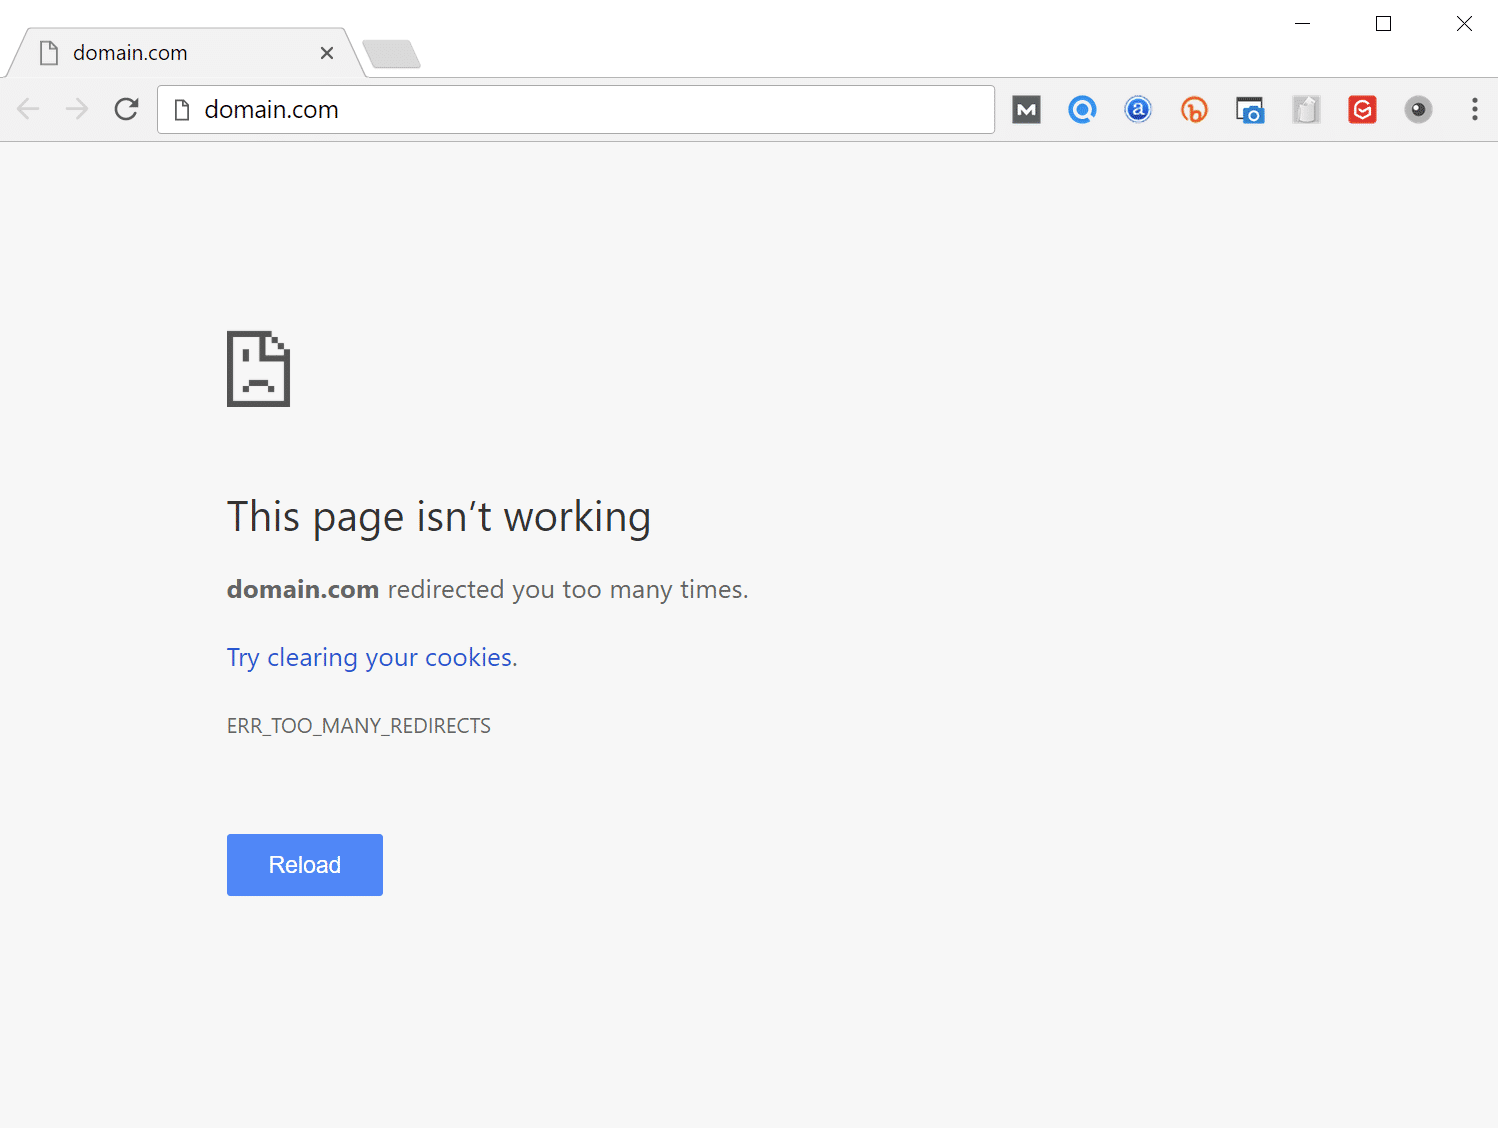 Too Many Redirects